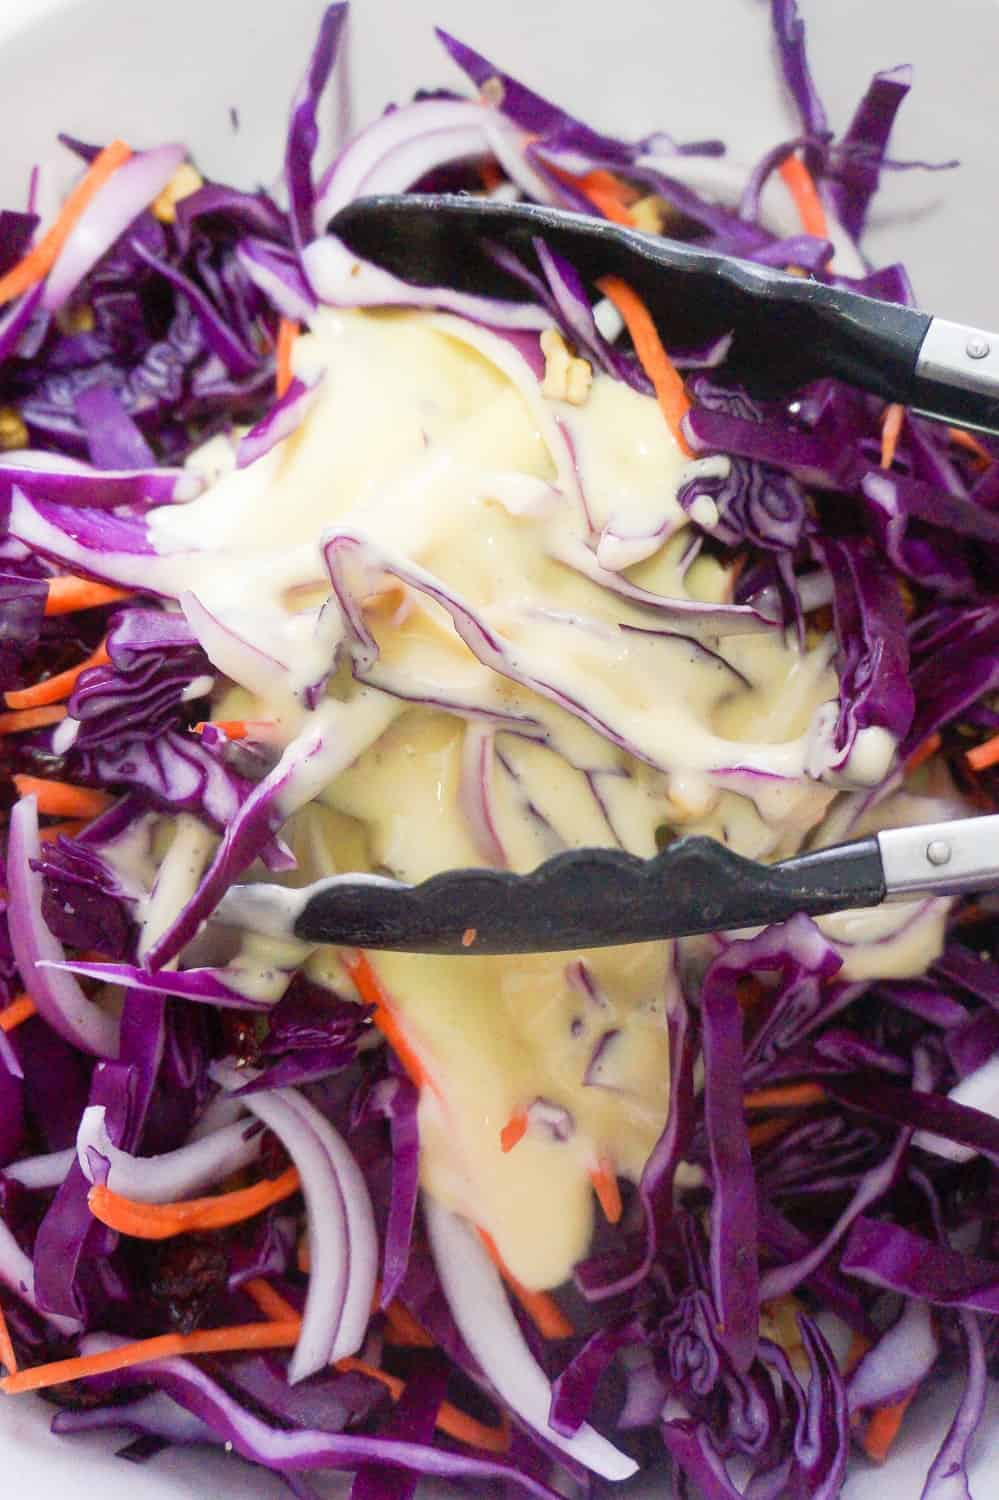 creamy coleslaw dressing before mixing